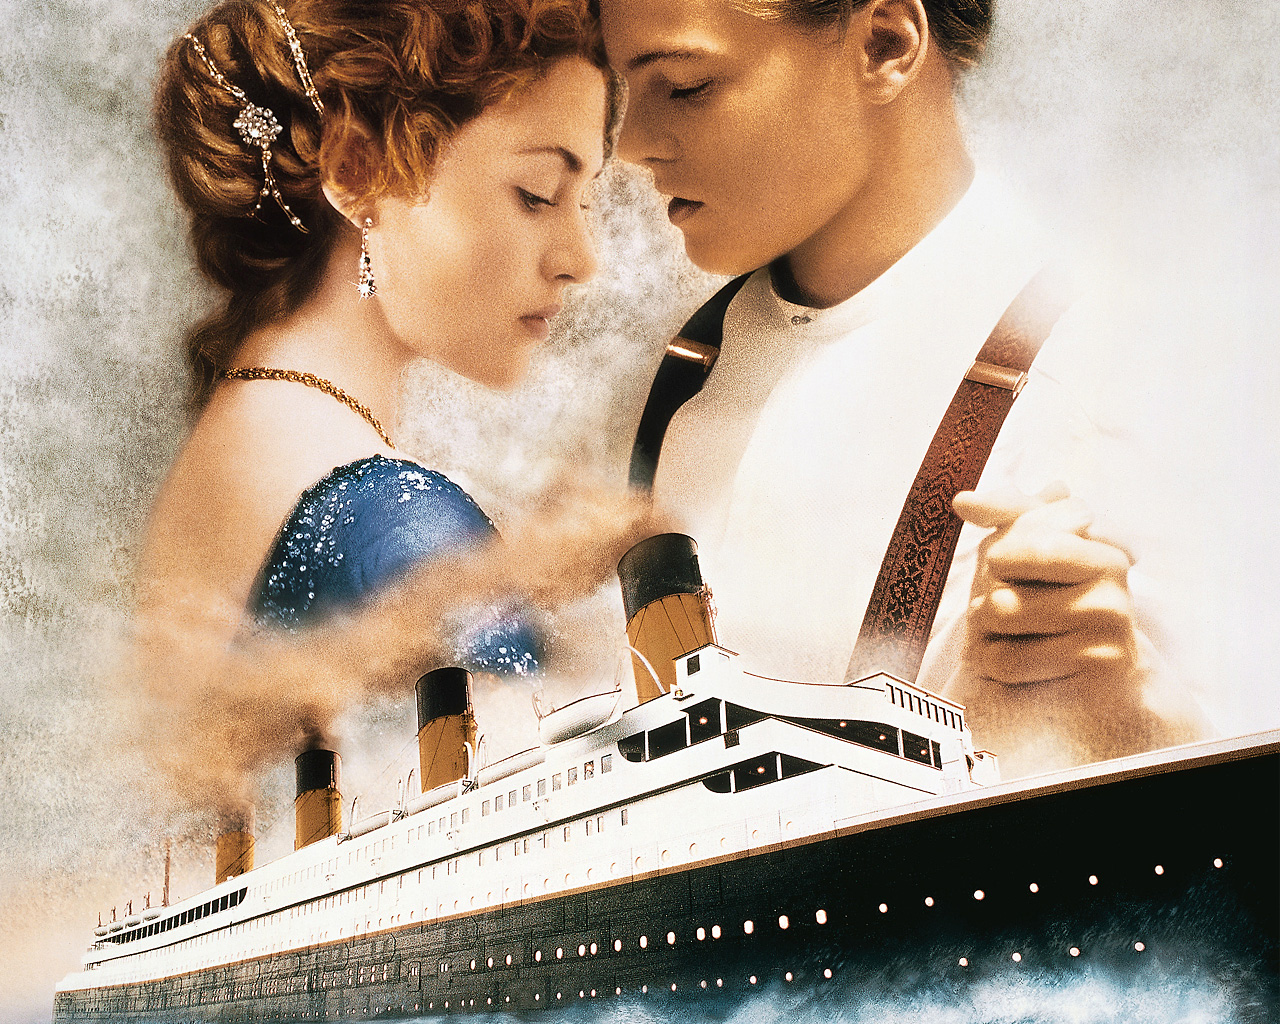 Kate Winslet In Titanic Movie Wallpapers, Pictures ...